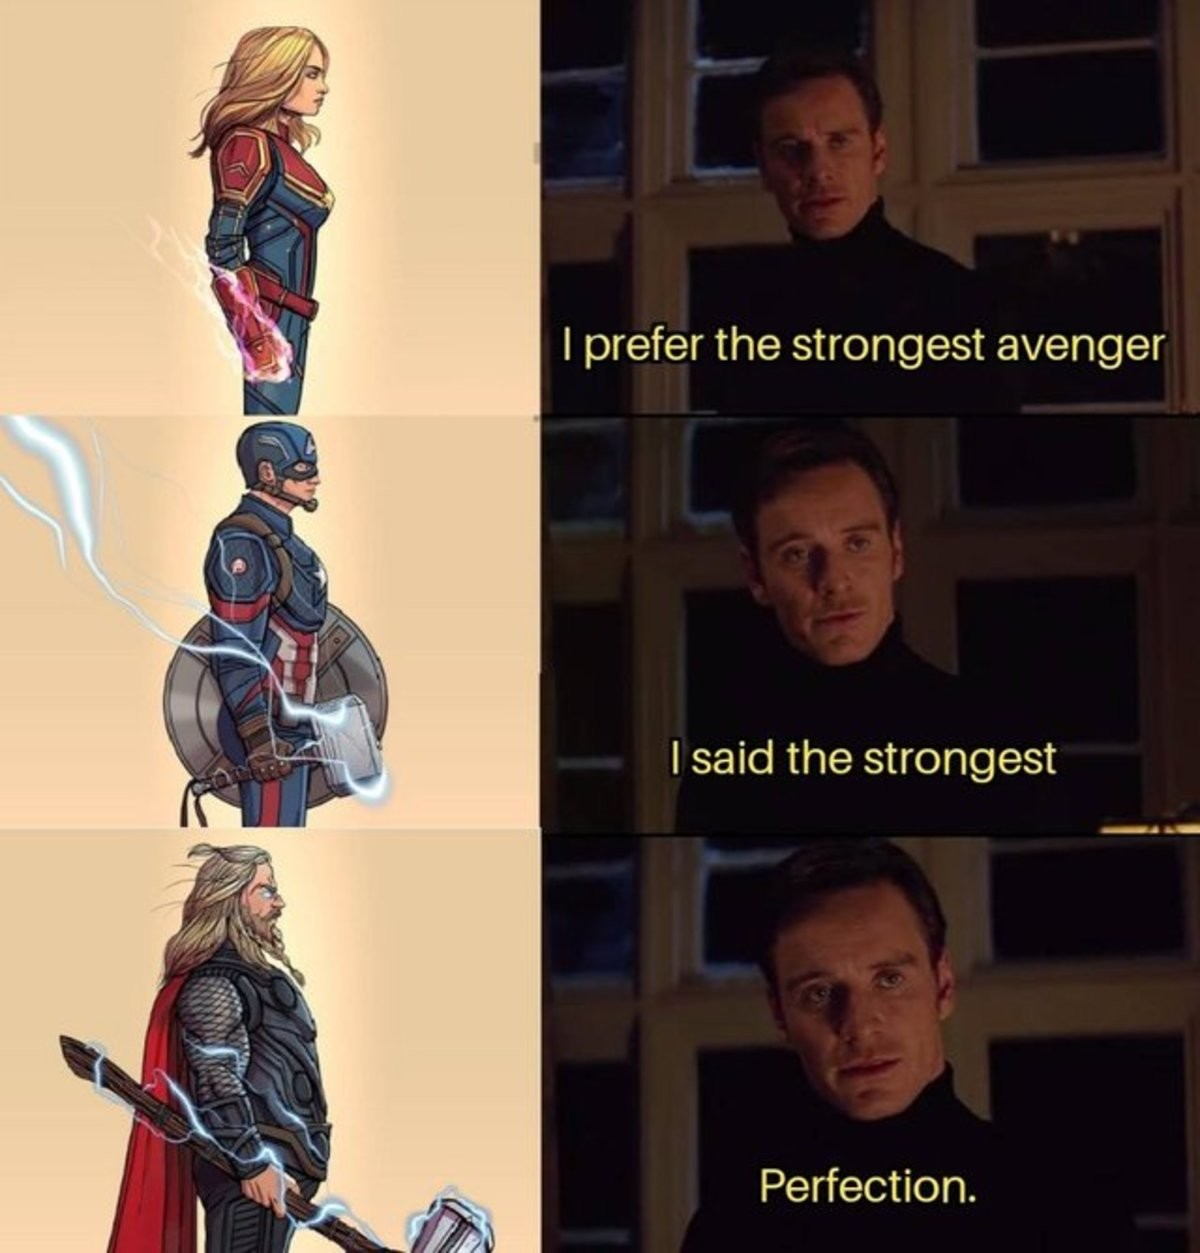 snorts avenger. .. Fat Thor was the most relatable avenger, I'm not even fat, it just spoke to me.